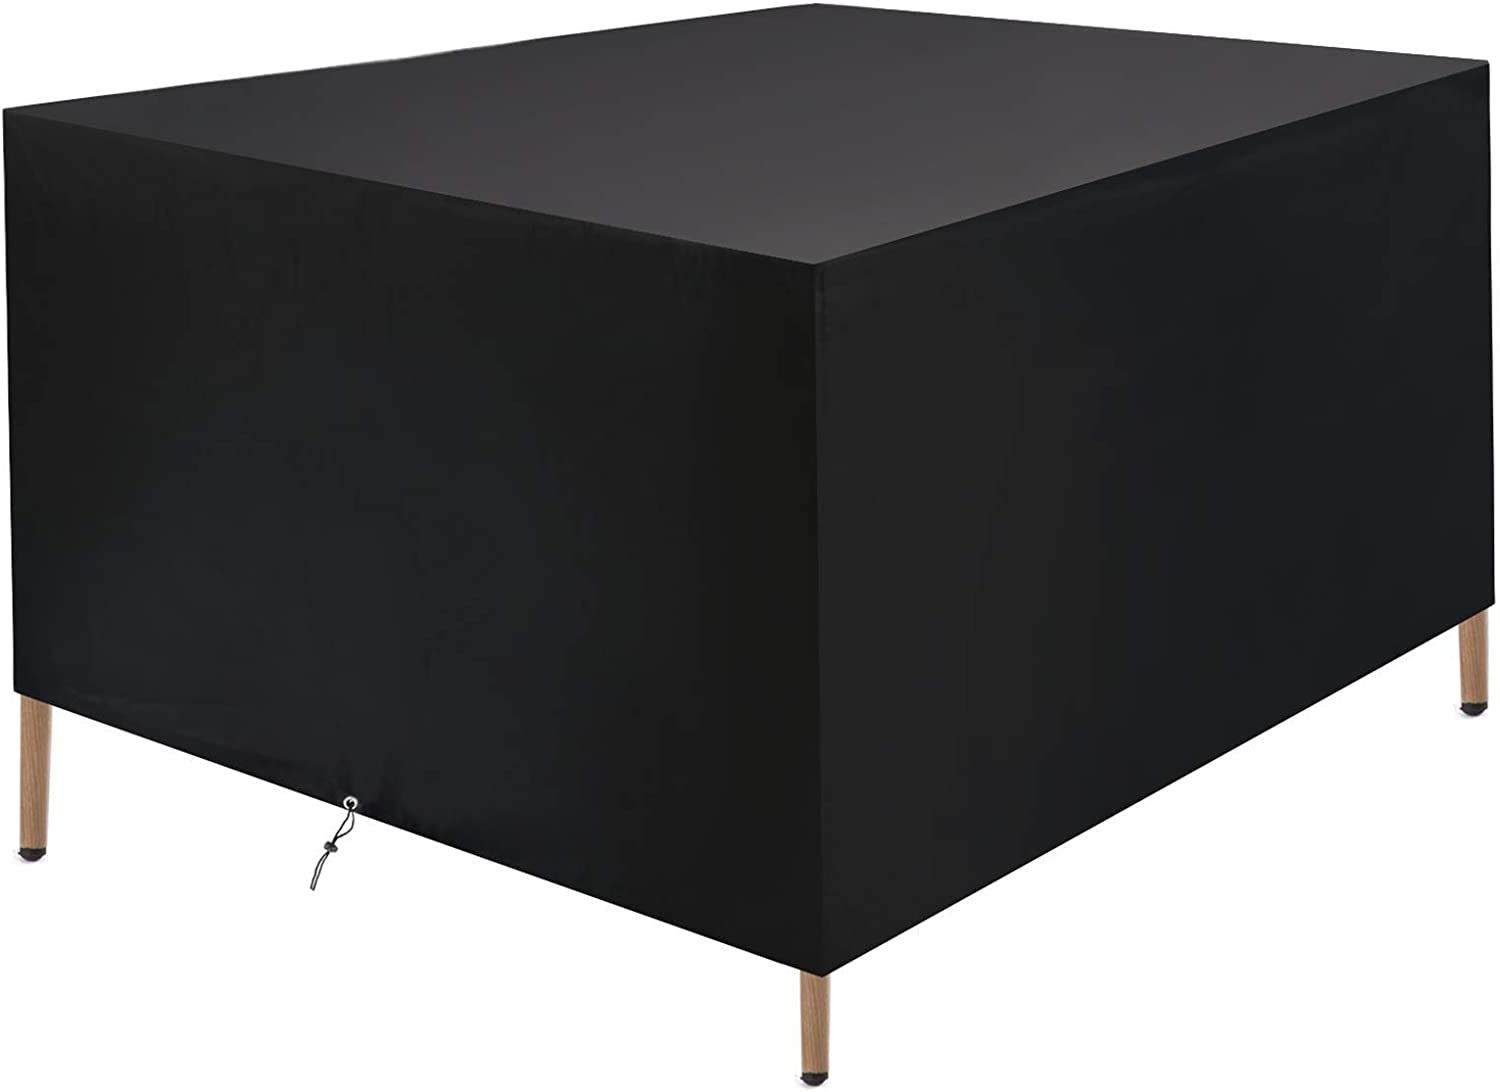 """Mancro Outdoor Patio Furniture Covers, 48""""x48""""x29"""" Extra Large Square Patio Table Covers, Waterproof, Windproof, Tear-Resistant and Anti-UV, Patio Covers for Outdoor Furniture, Black"""